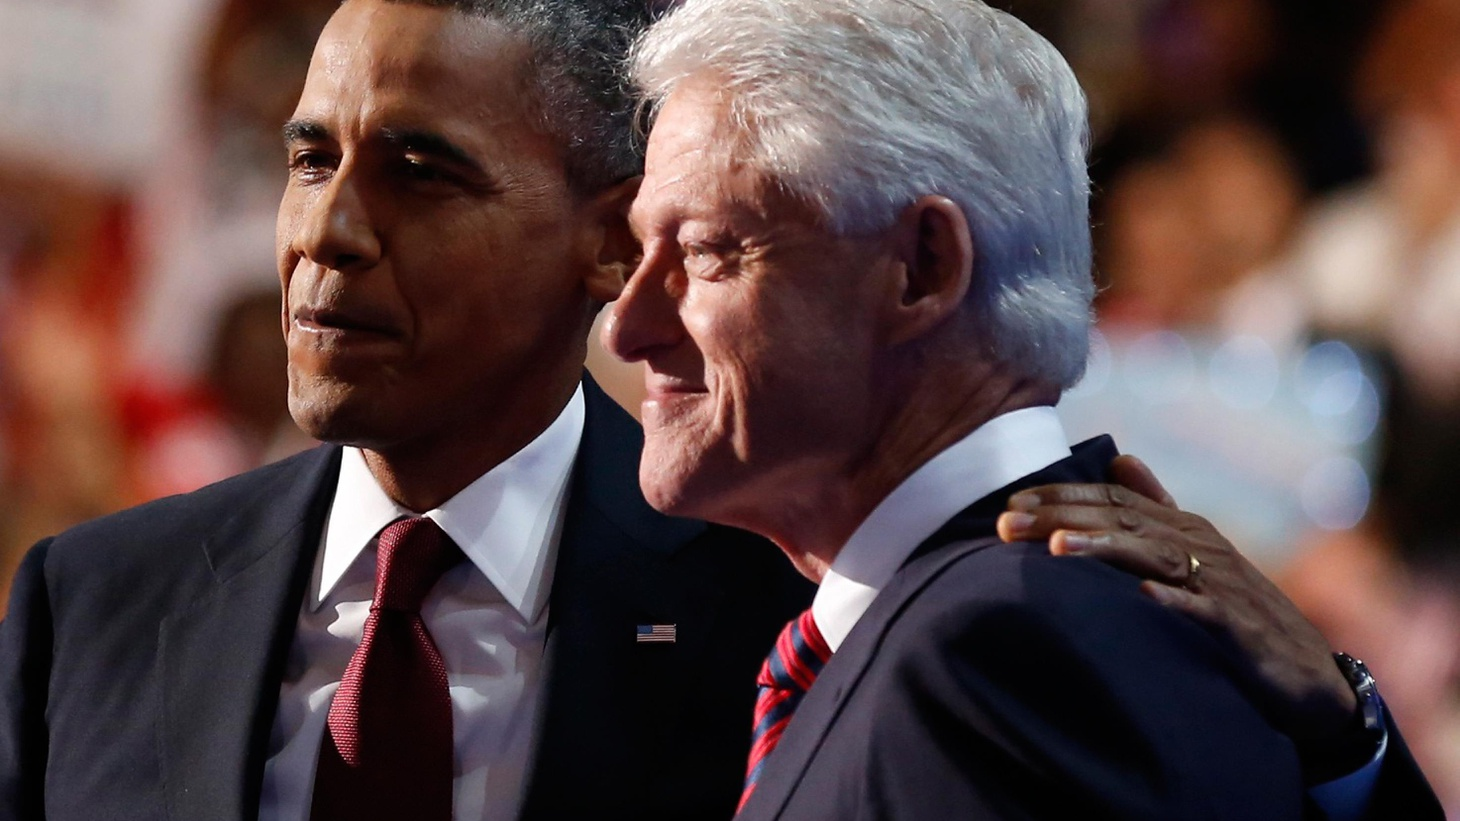 Michelle Obama humanizes. Bill Clinton extemporizes. President Obama rhapsodizes. Then along come those August job figures. Incumbency has its pluses...and its minuses.